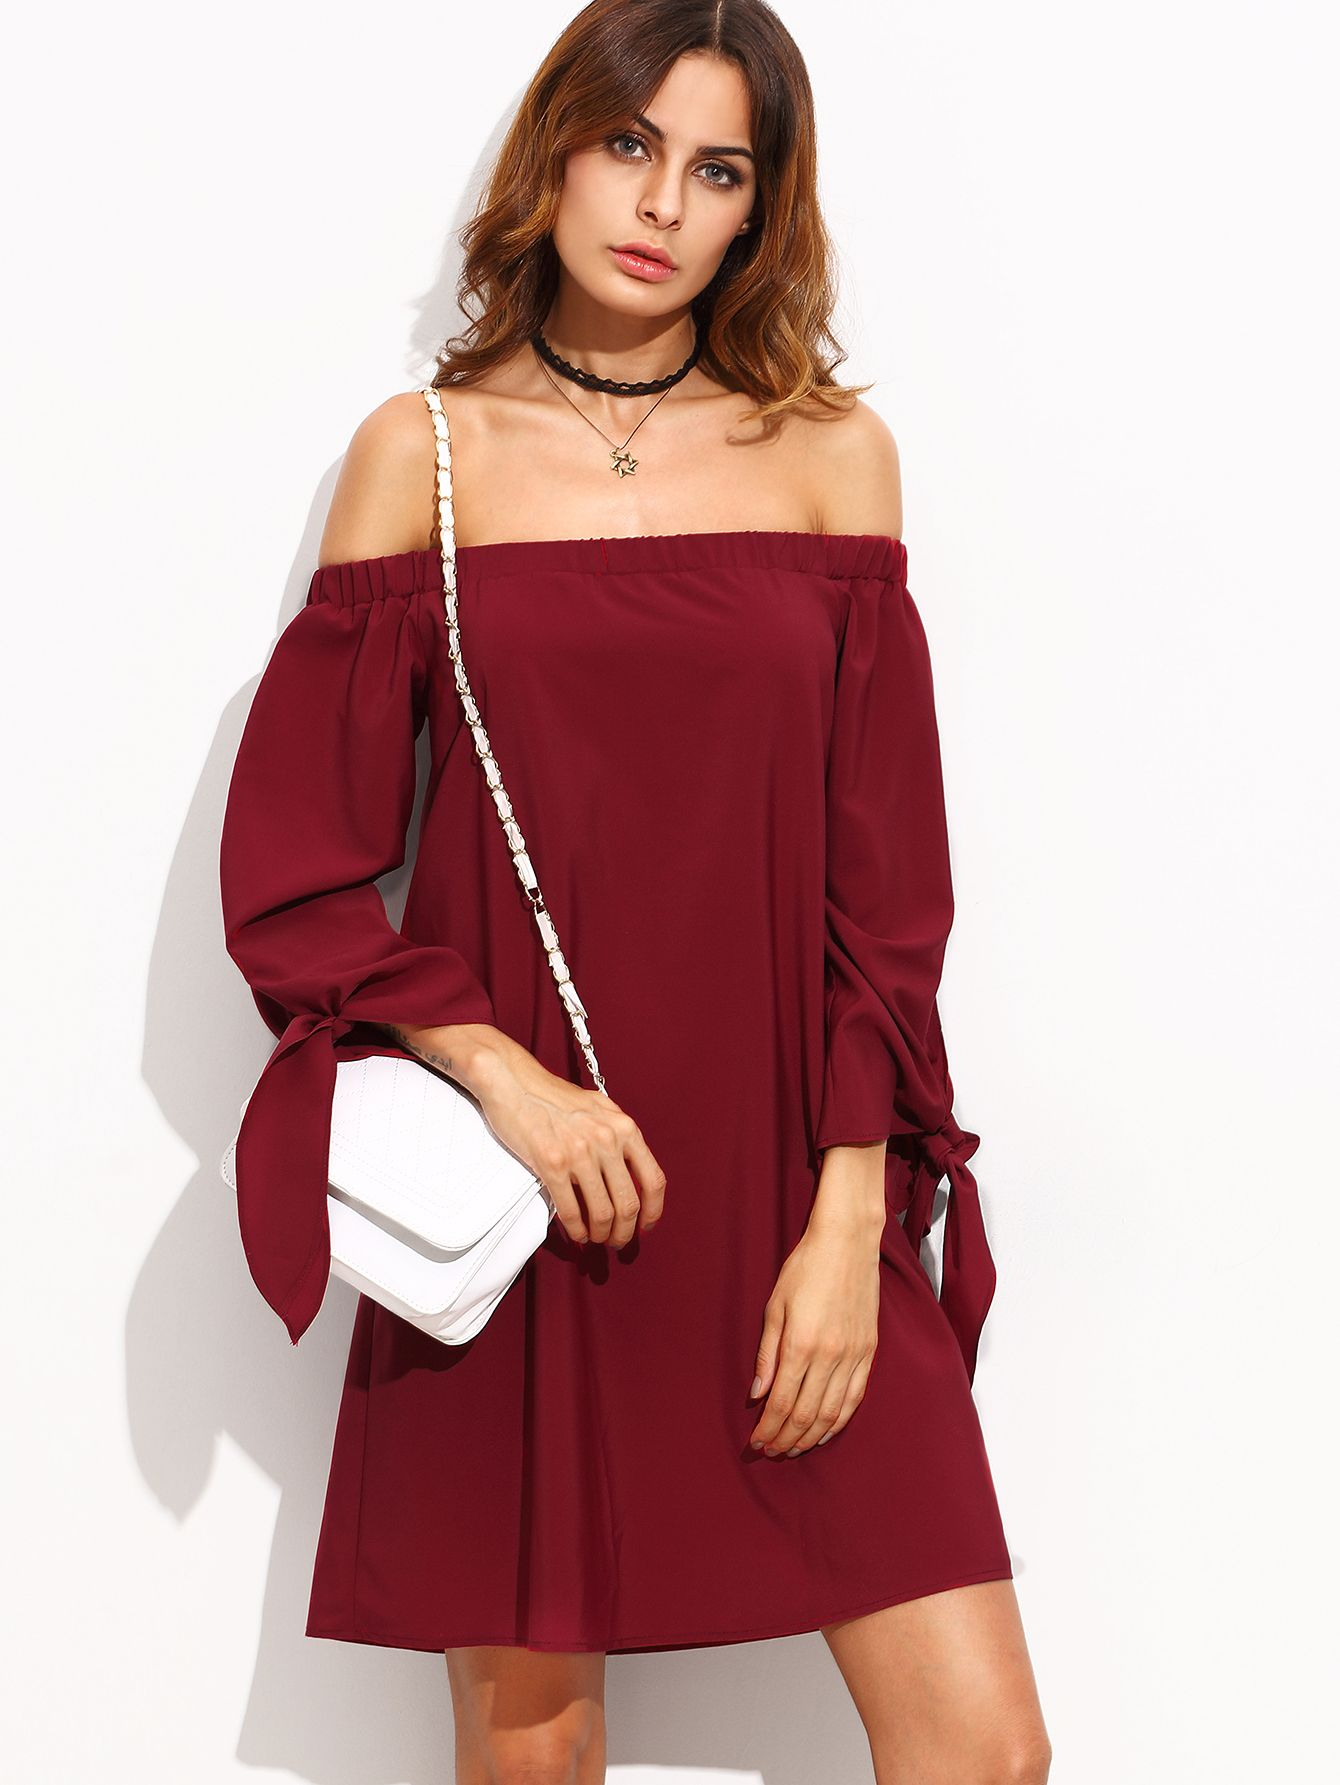 Women fashion spring outfits party perfect airctb